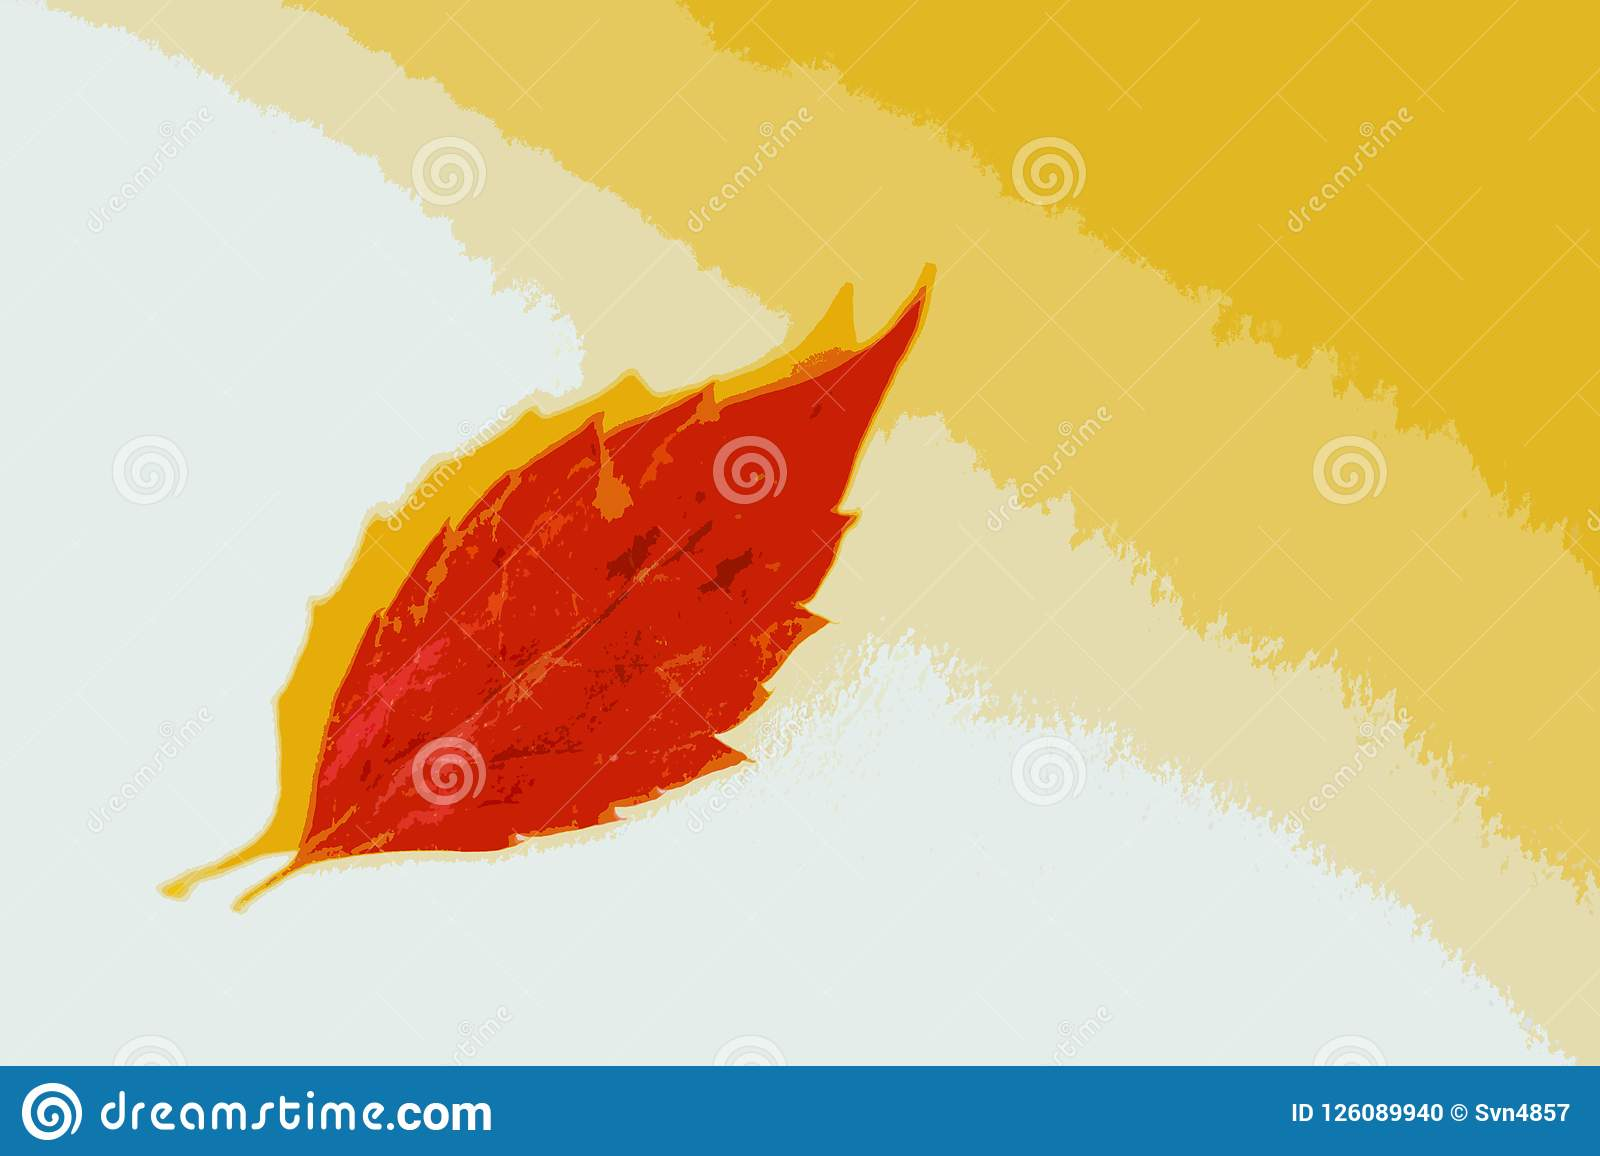 Red Leaf On A White Yellow Background Stock Illustration